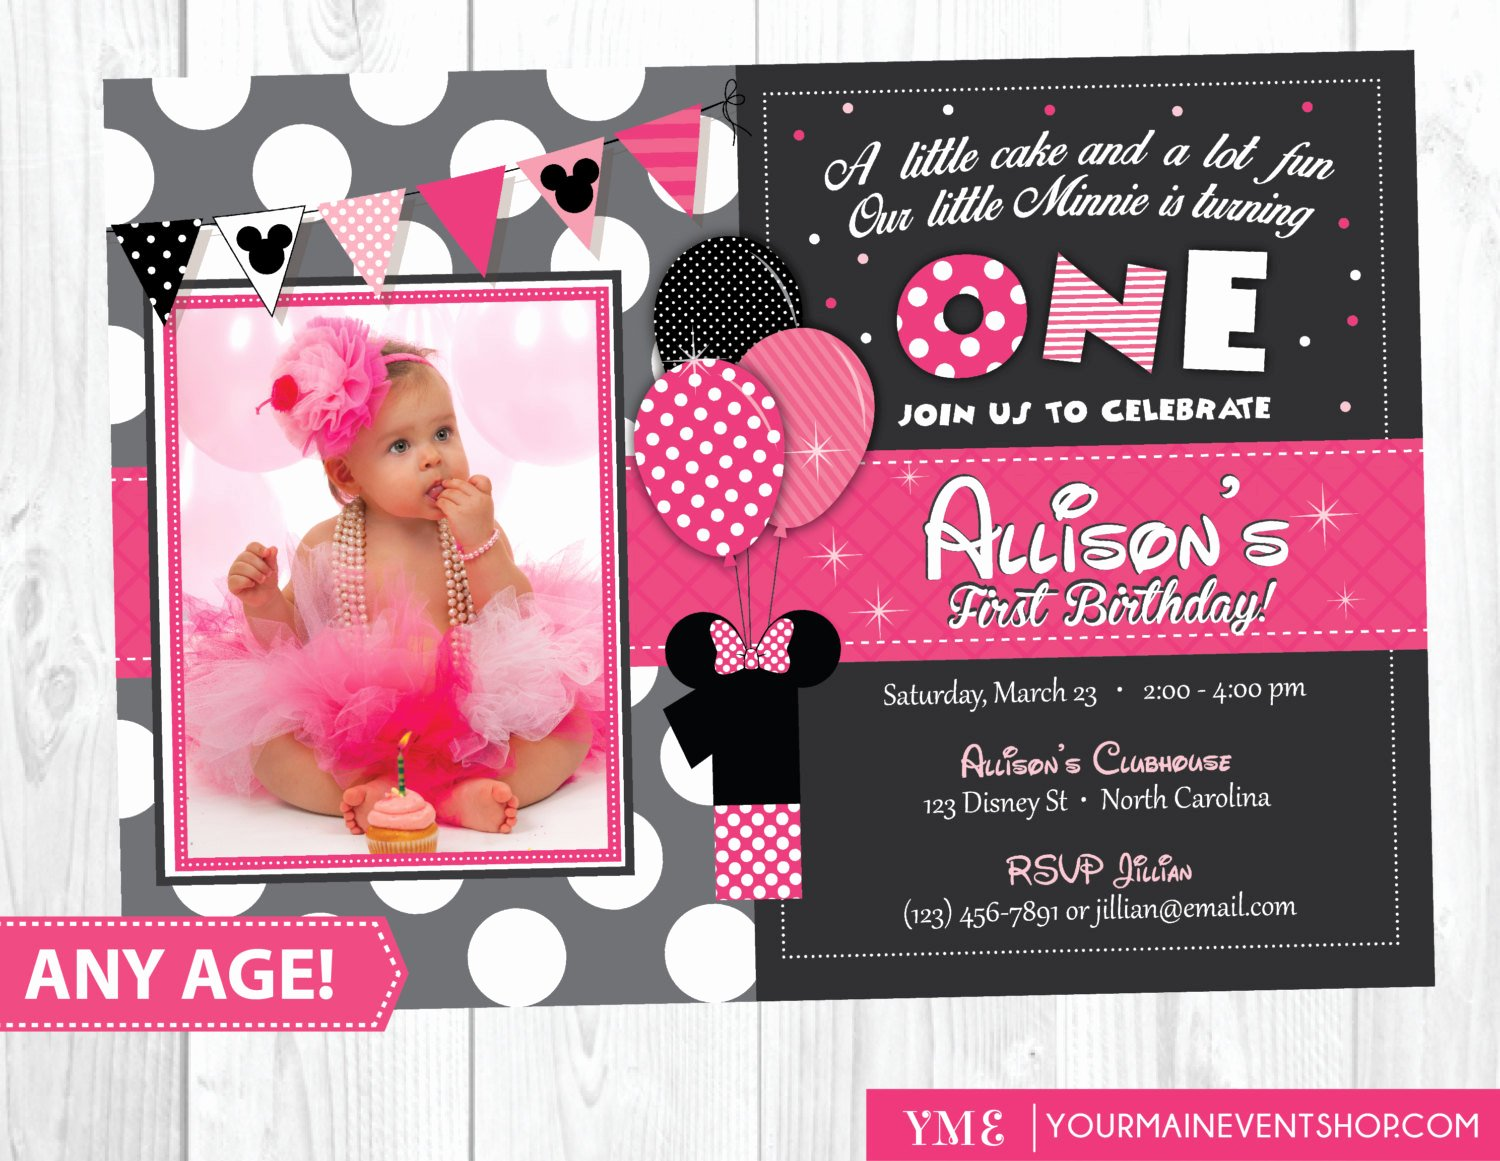 Minnie Mouse Birthday Invitations Luxury Minnie Mouse Birthday Invitation Minnie Mouse Inspired